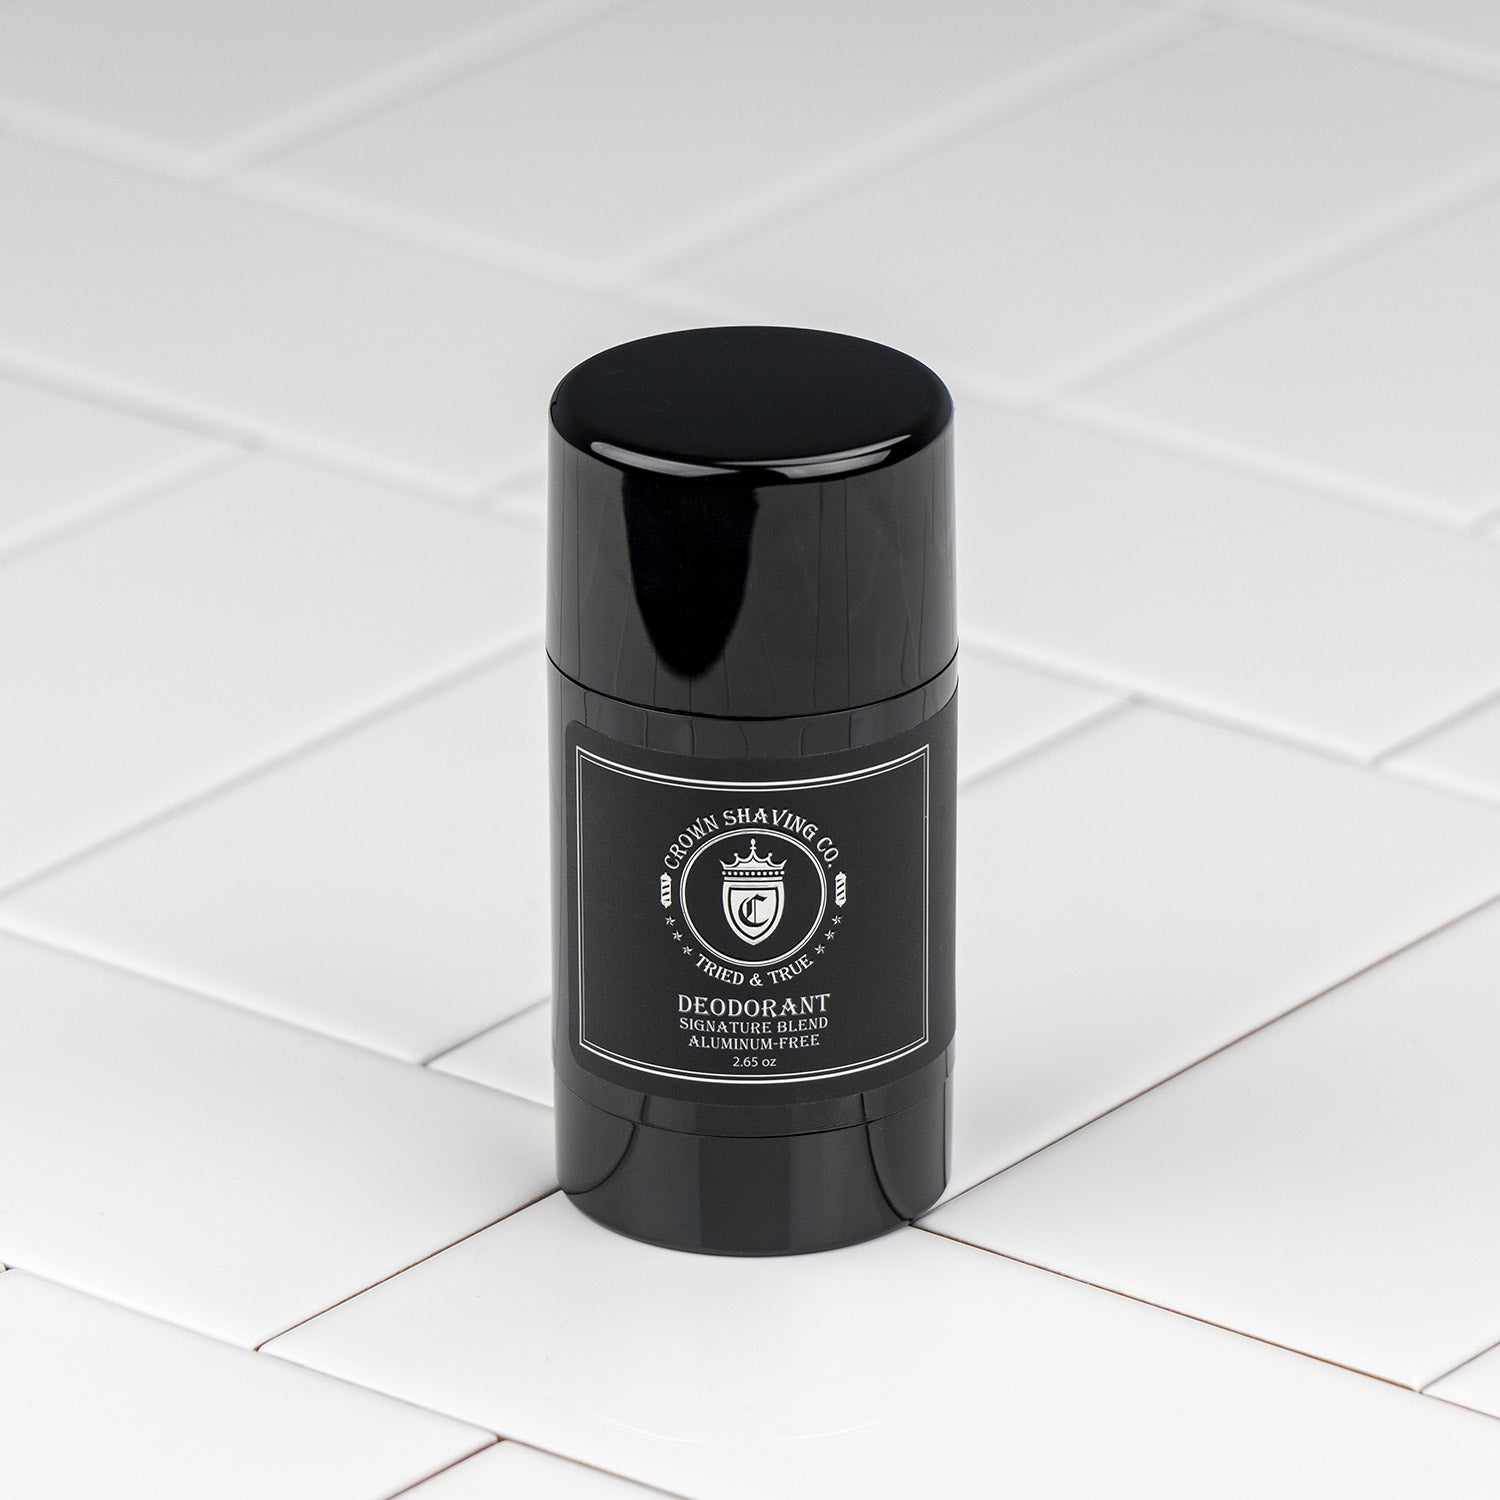 Crown Shaving Co. Aluminum-Free Deodorant